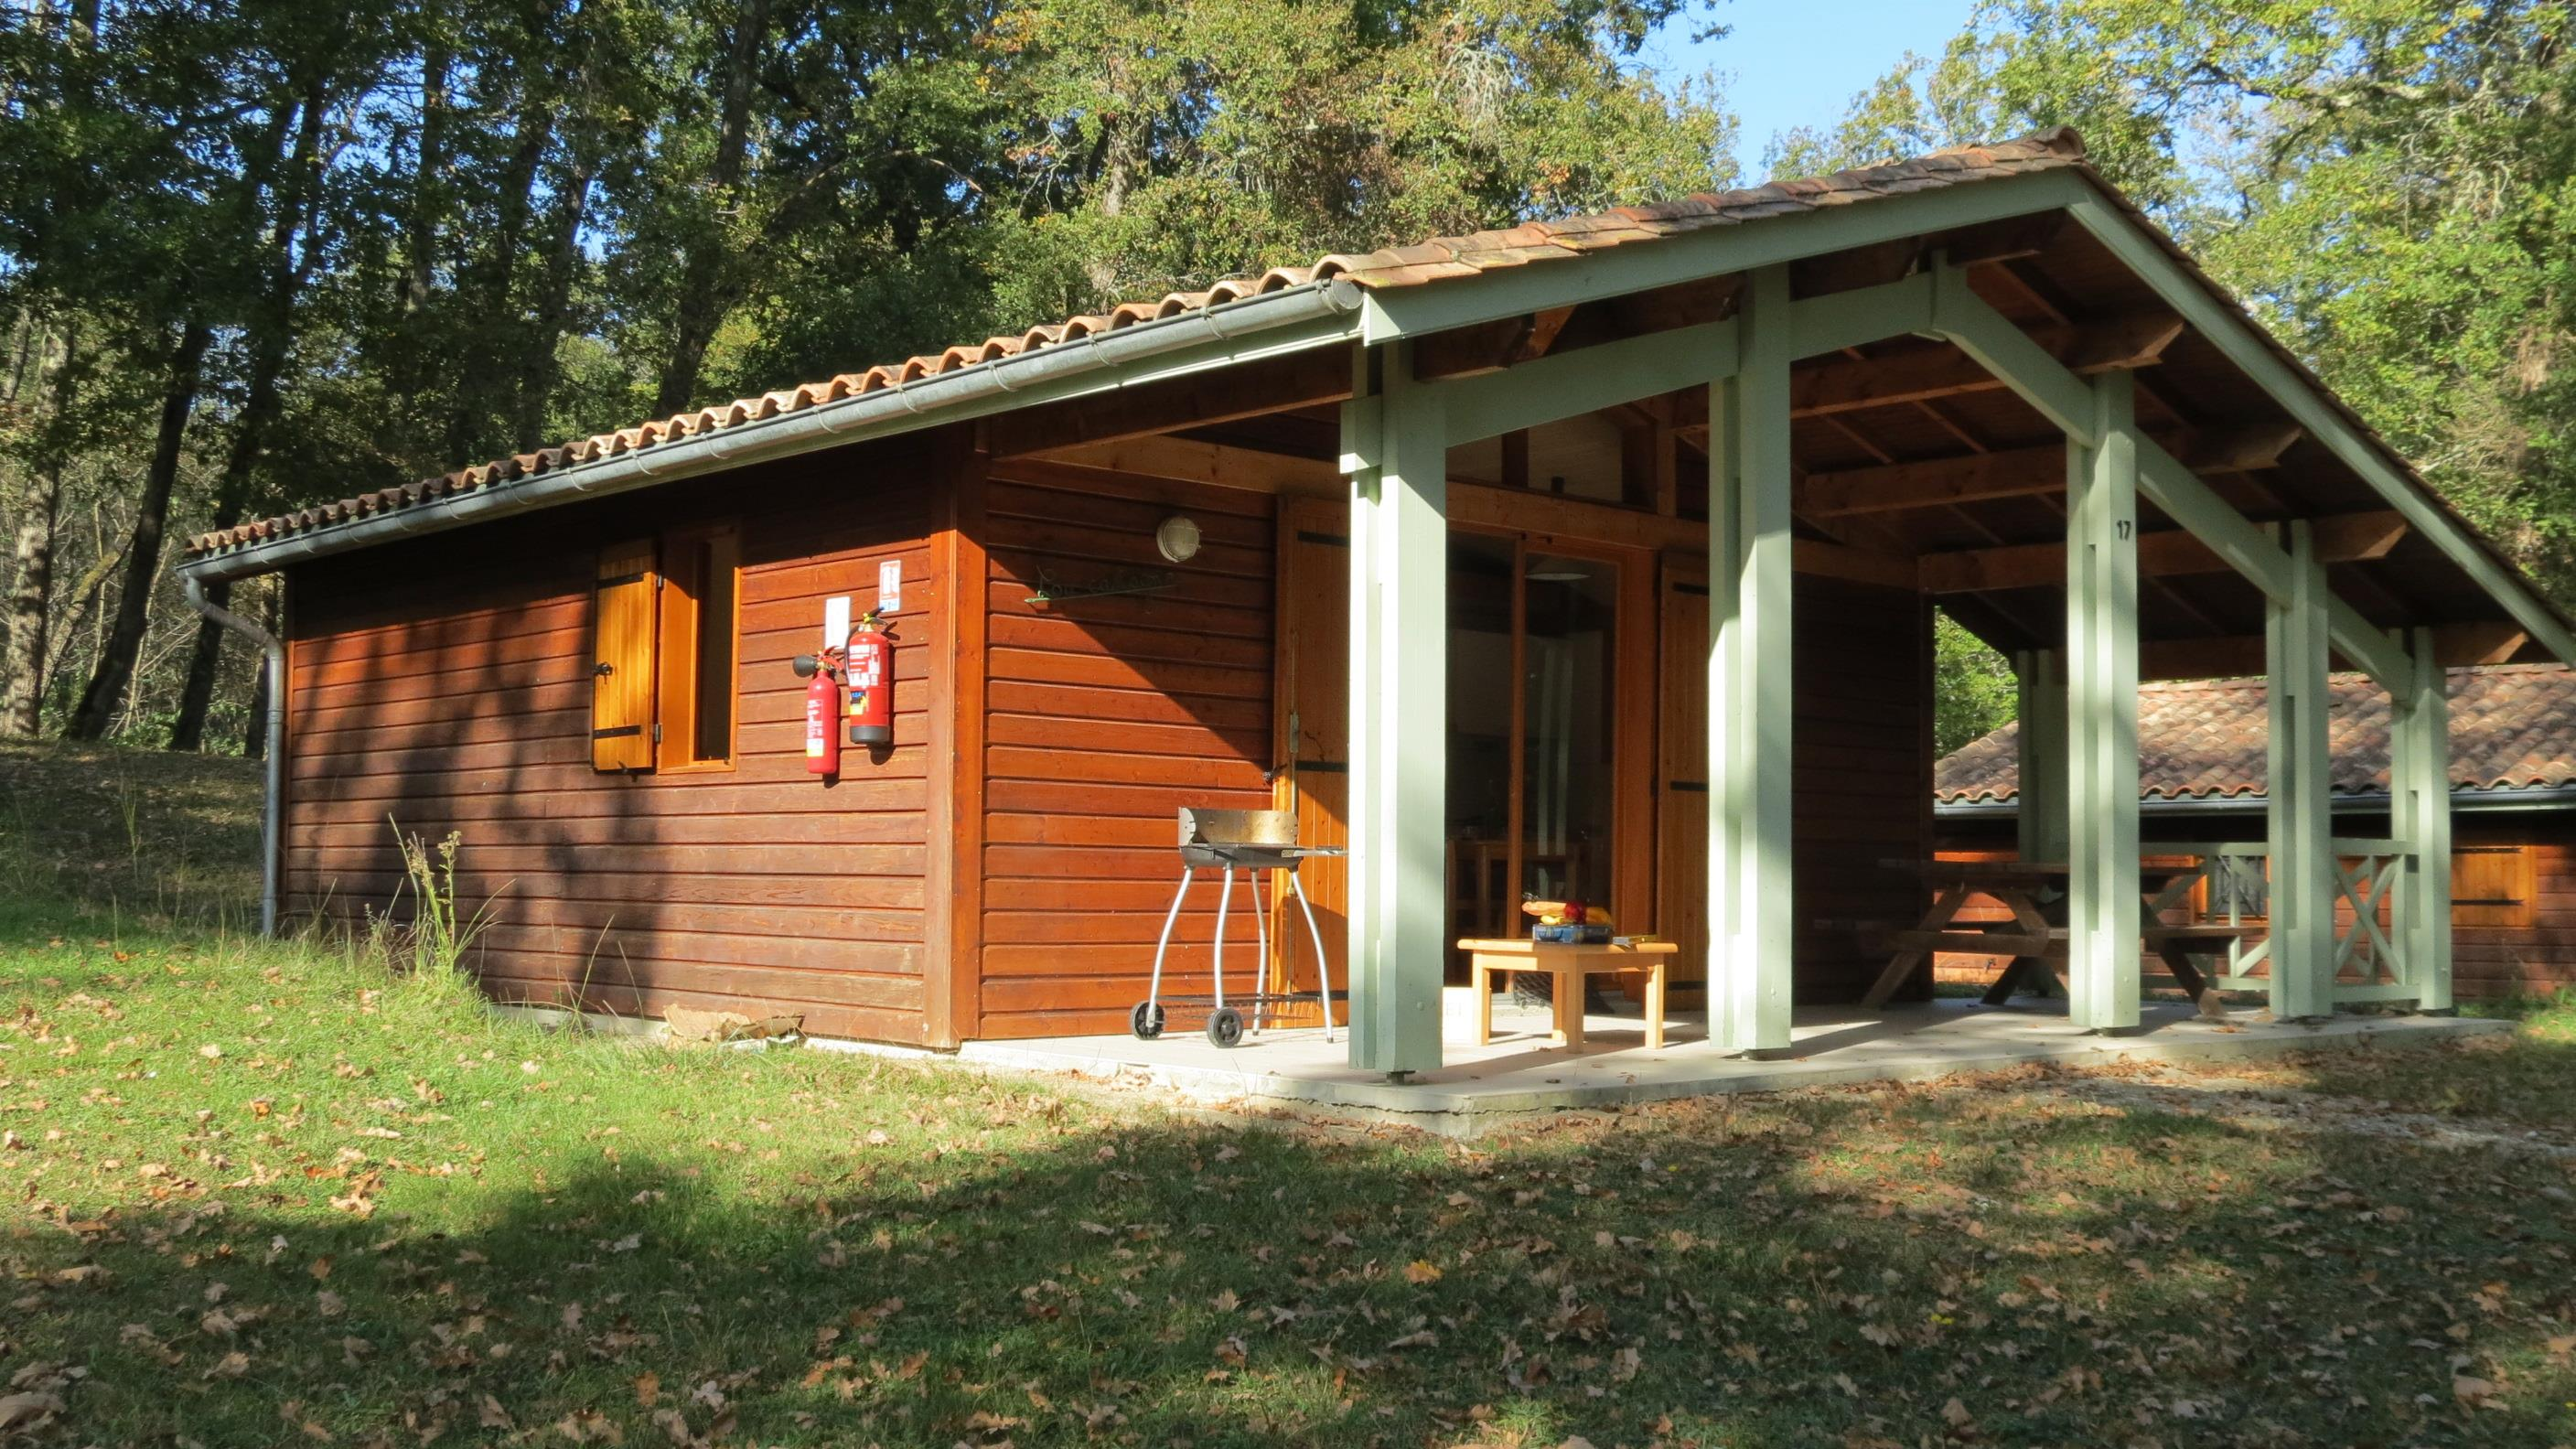 Chalet - 45m² 2 bedrooms, Front de lac, with covered terrace